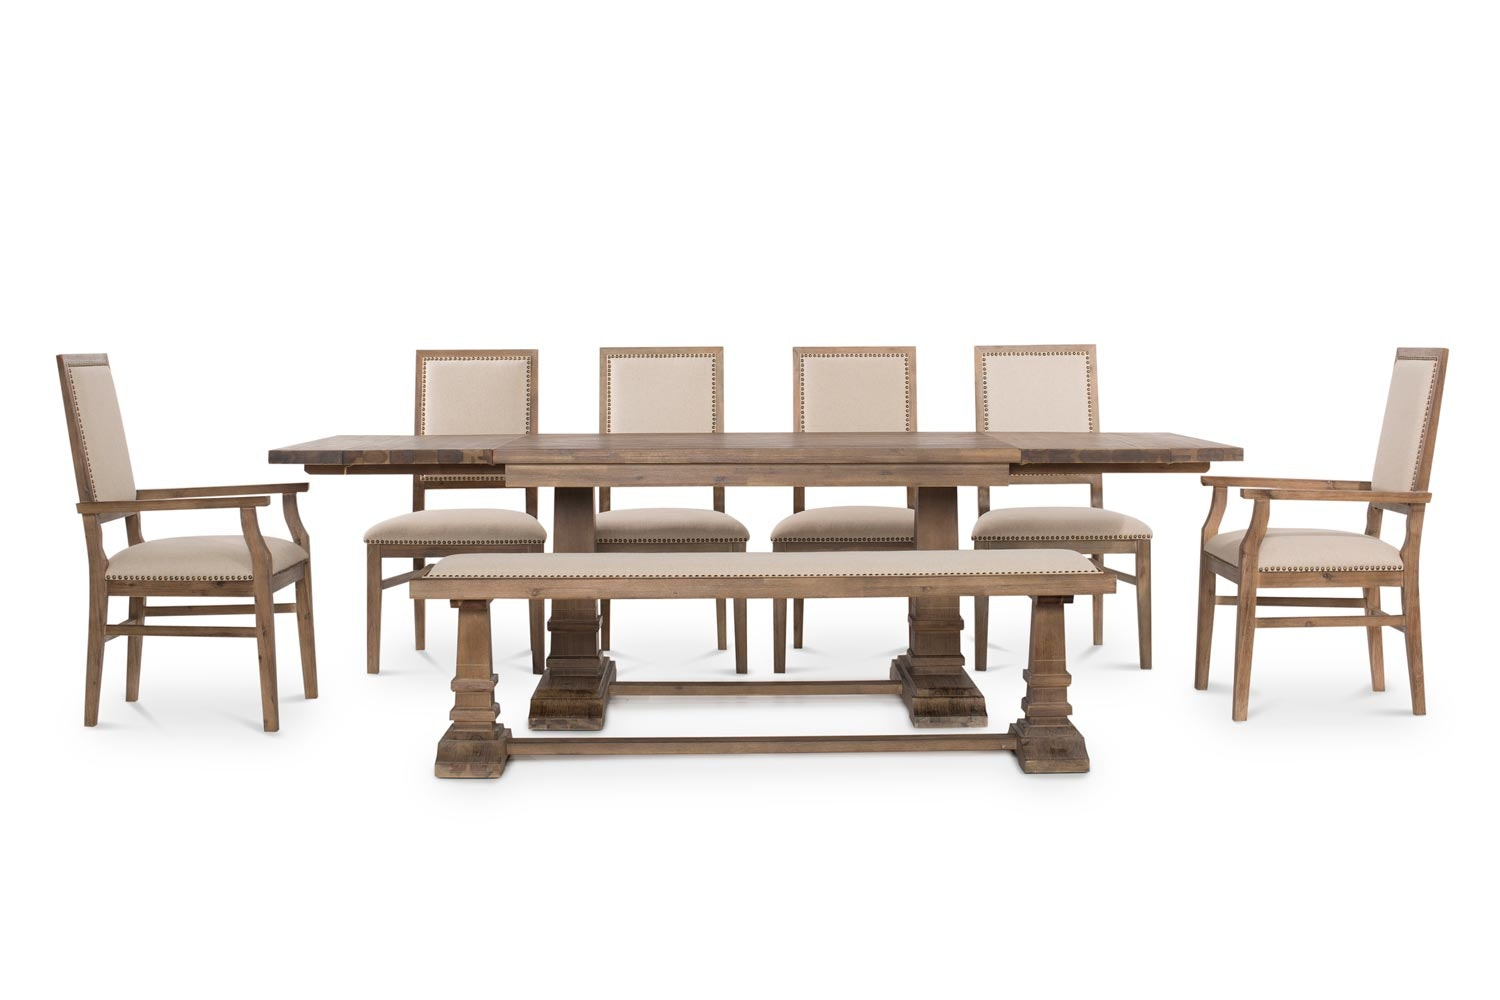 Larissa Extending Dining Set With Bench, 4 Dining Chairs and 2 Carver Chairs| 8 Piece